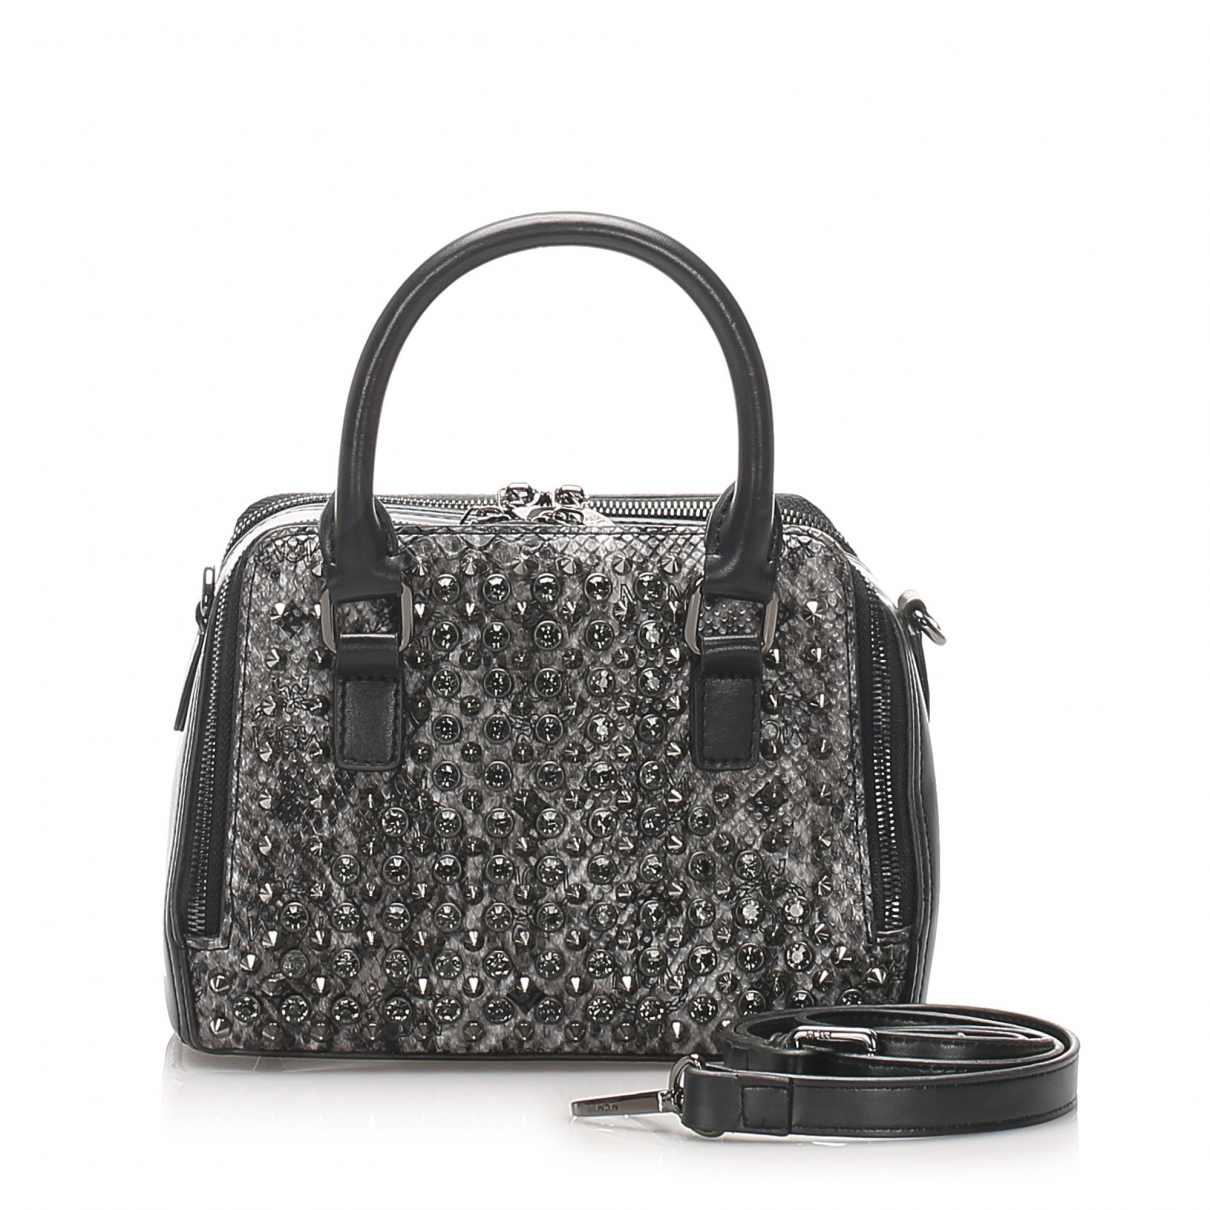 Mcm \N Black Leather handbag for Women \N